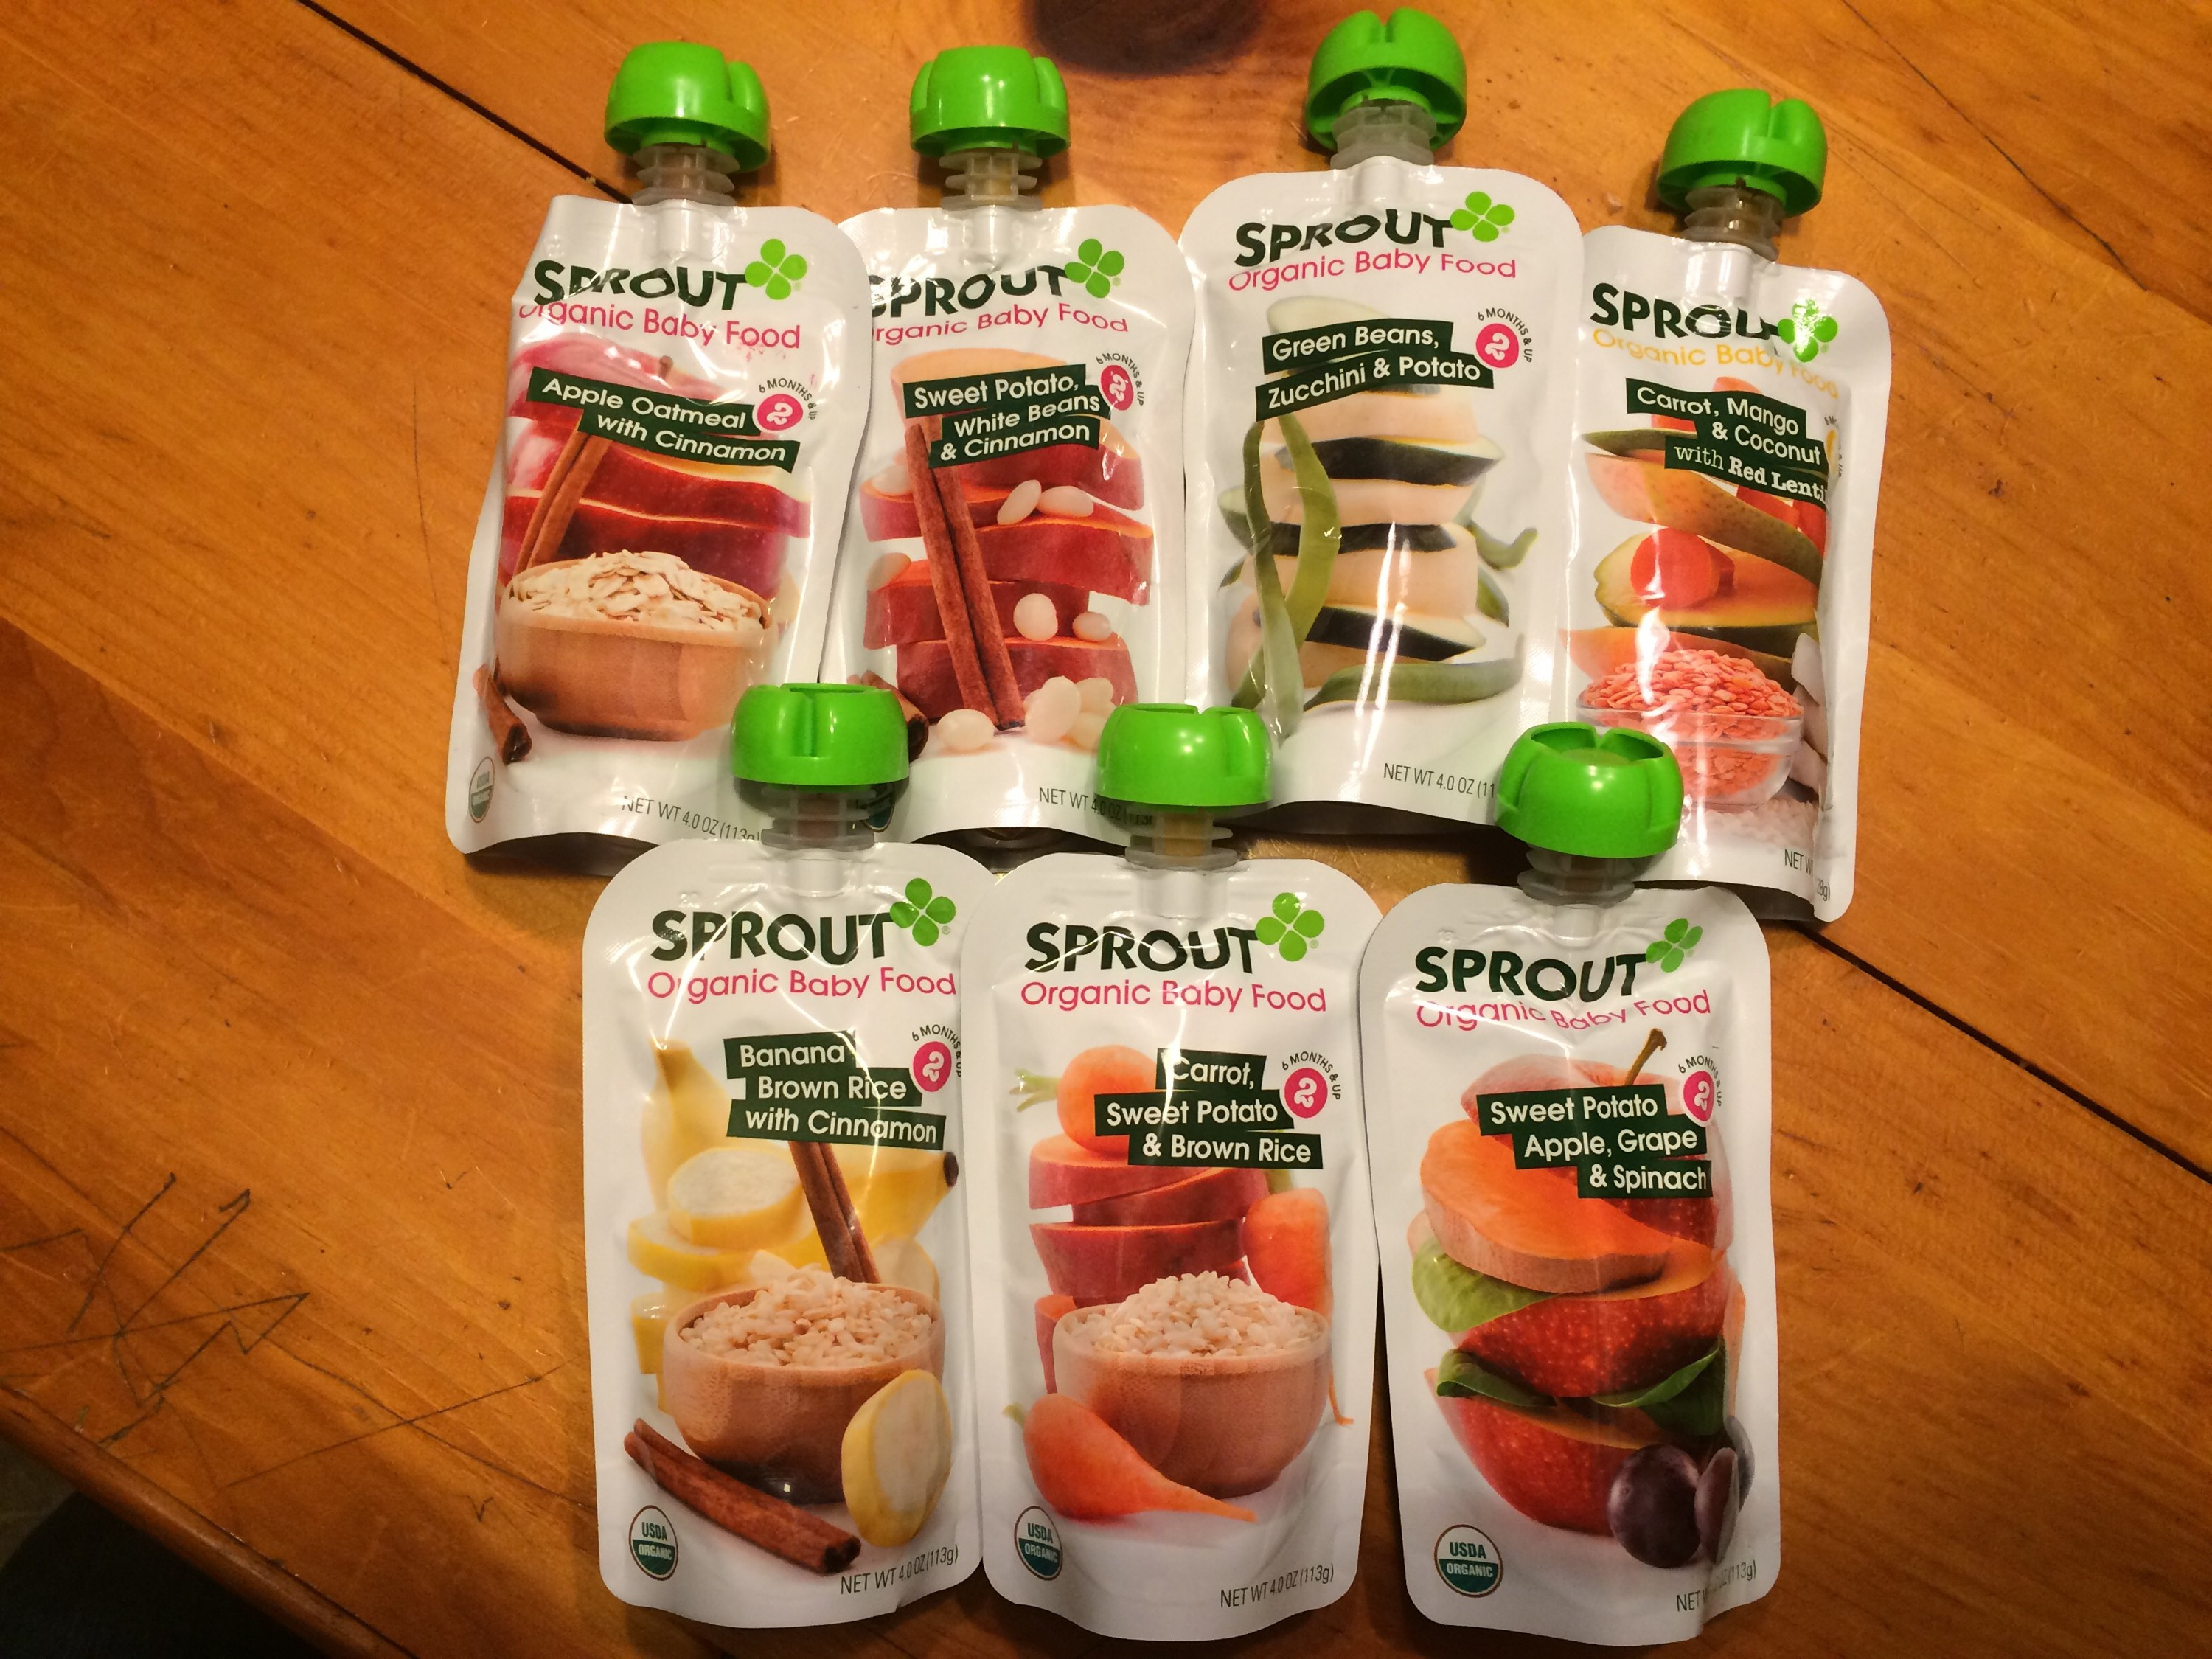 Sprout Organics